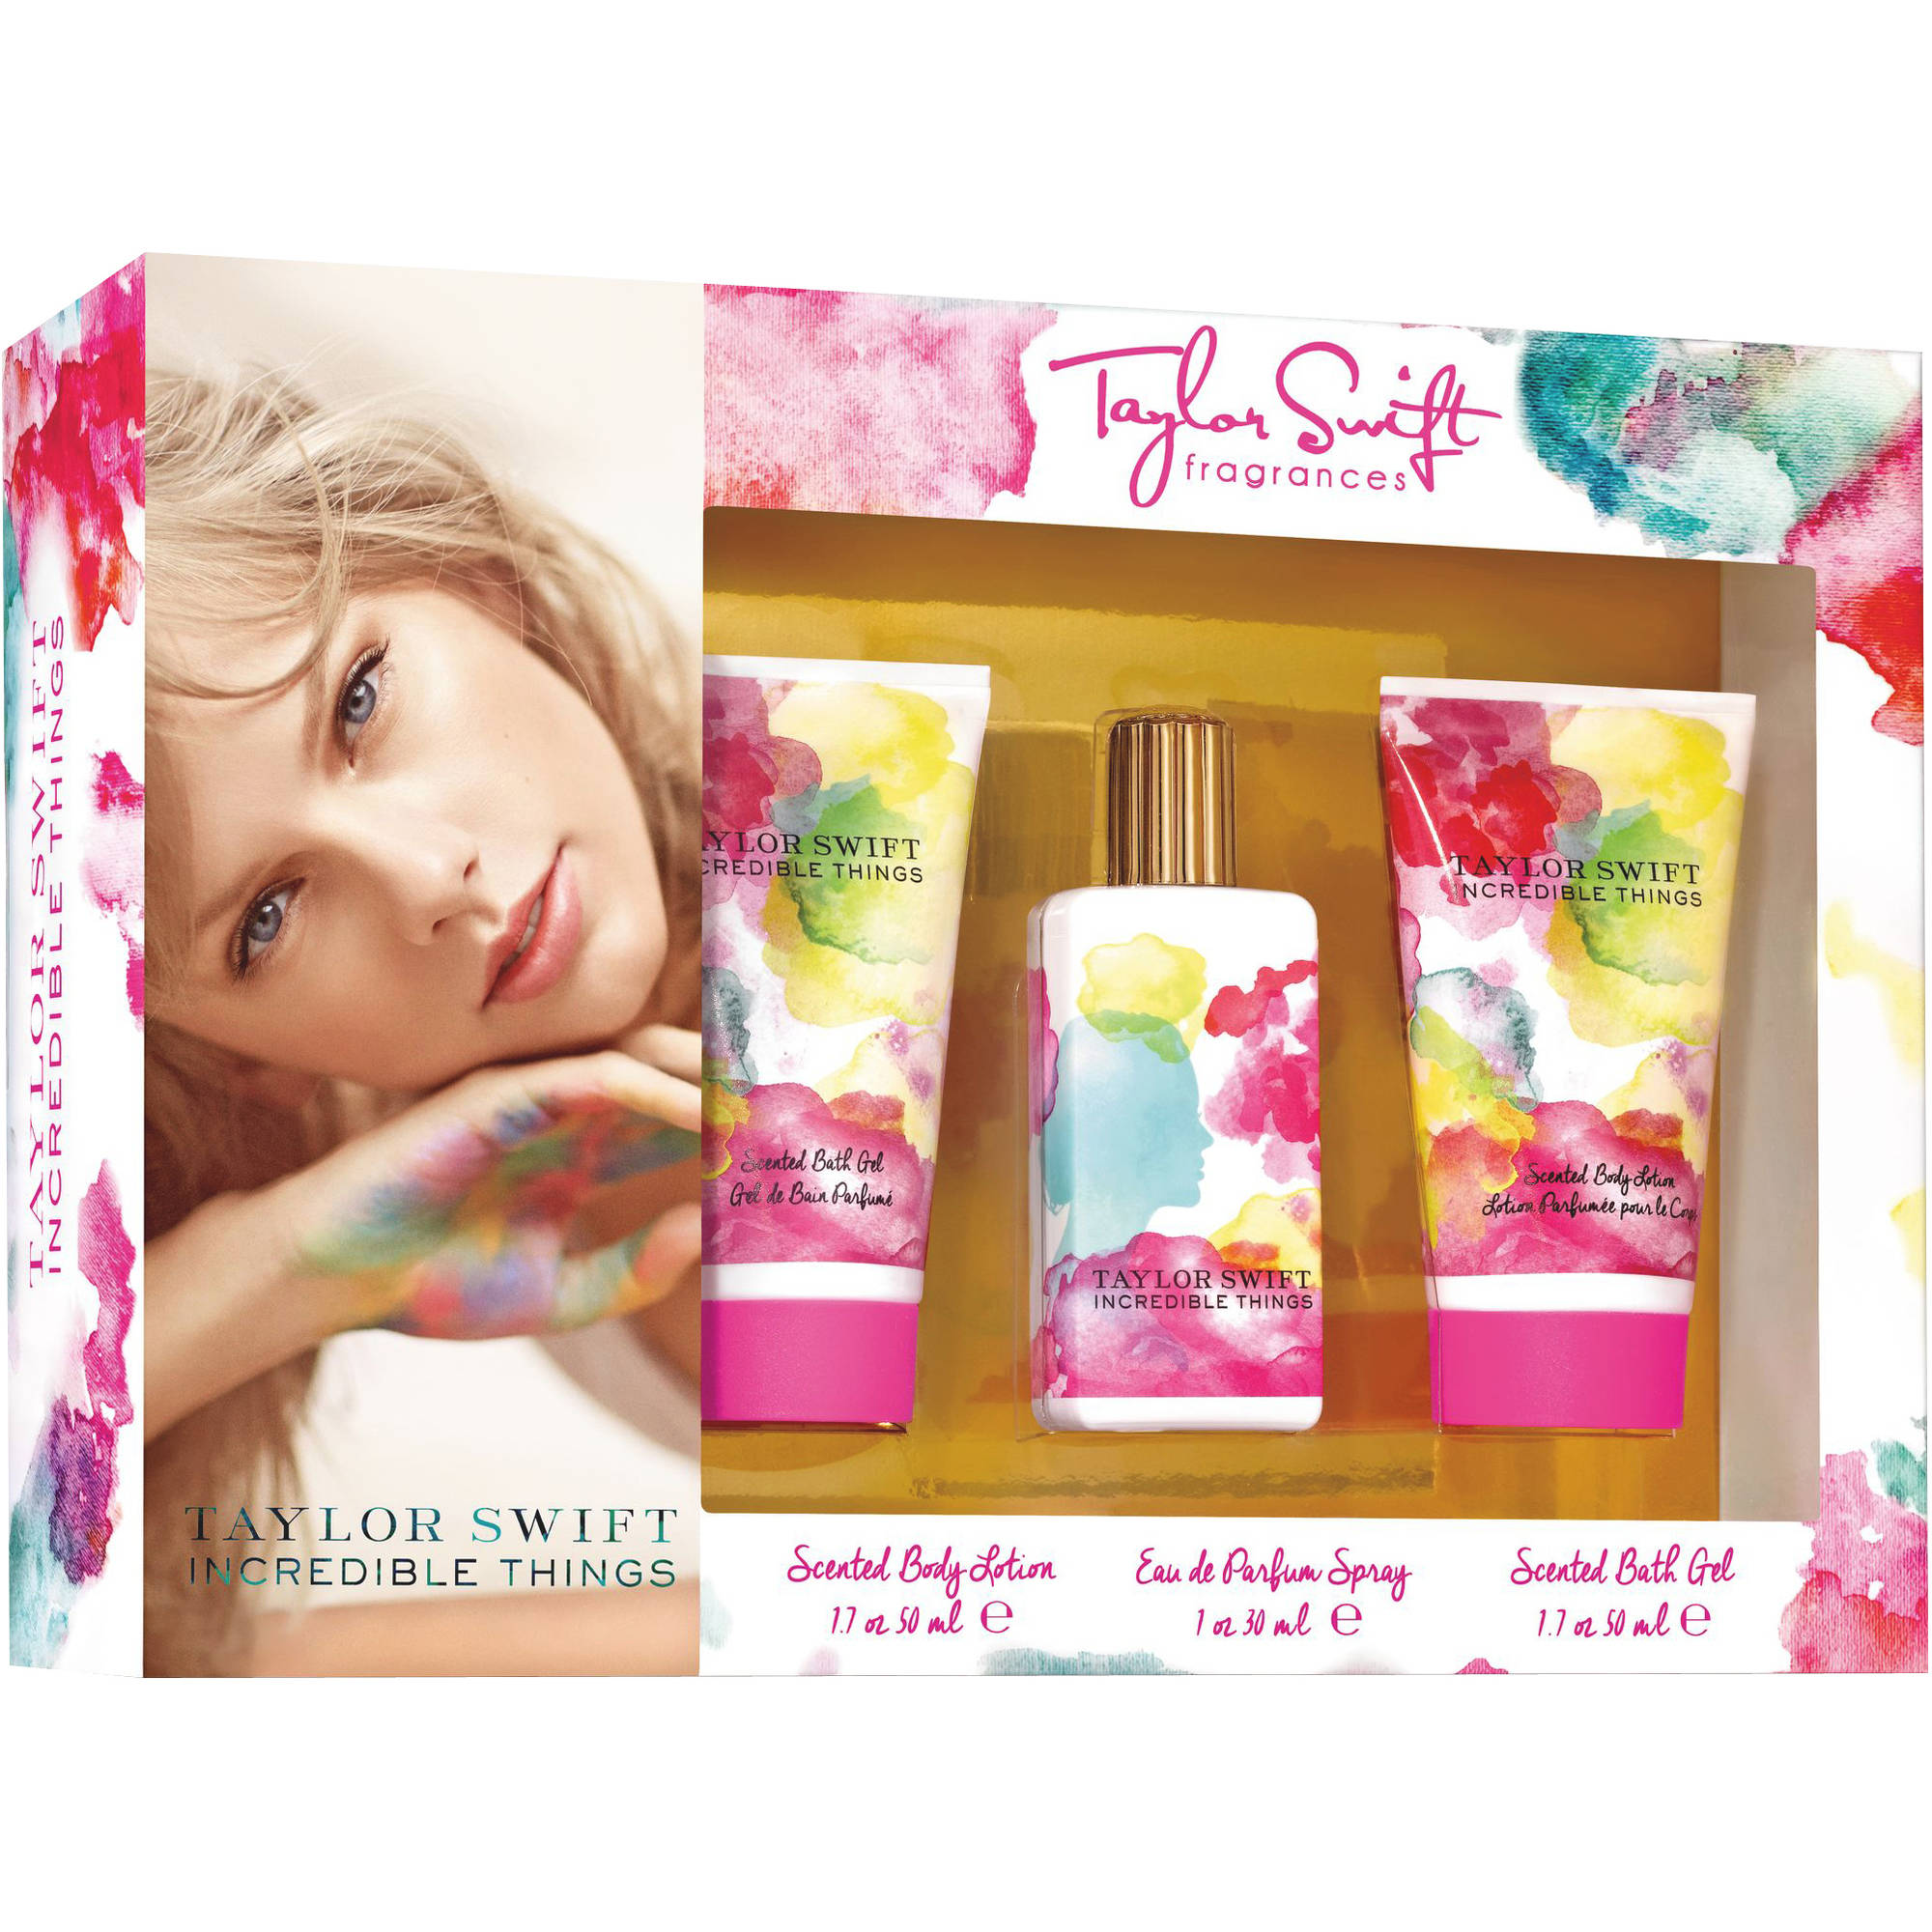 Taylor Swift Incredible Things Fragrance Gift Set, 3 pc